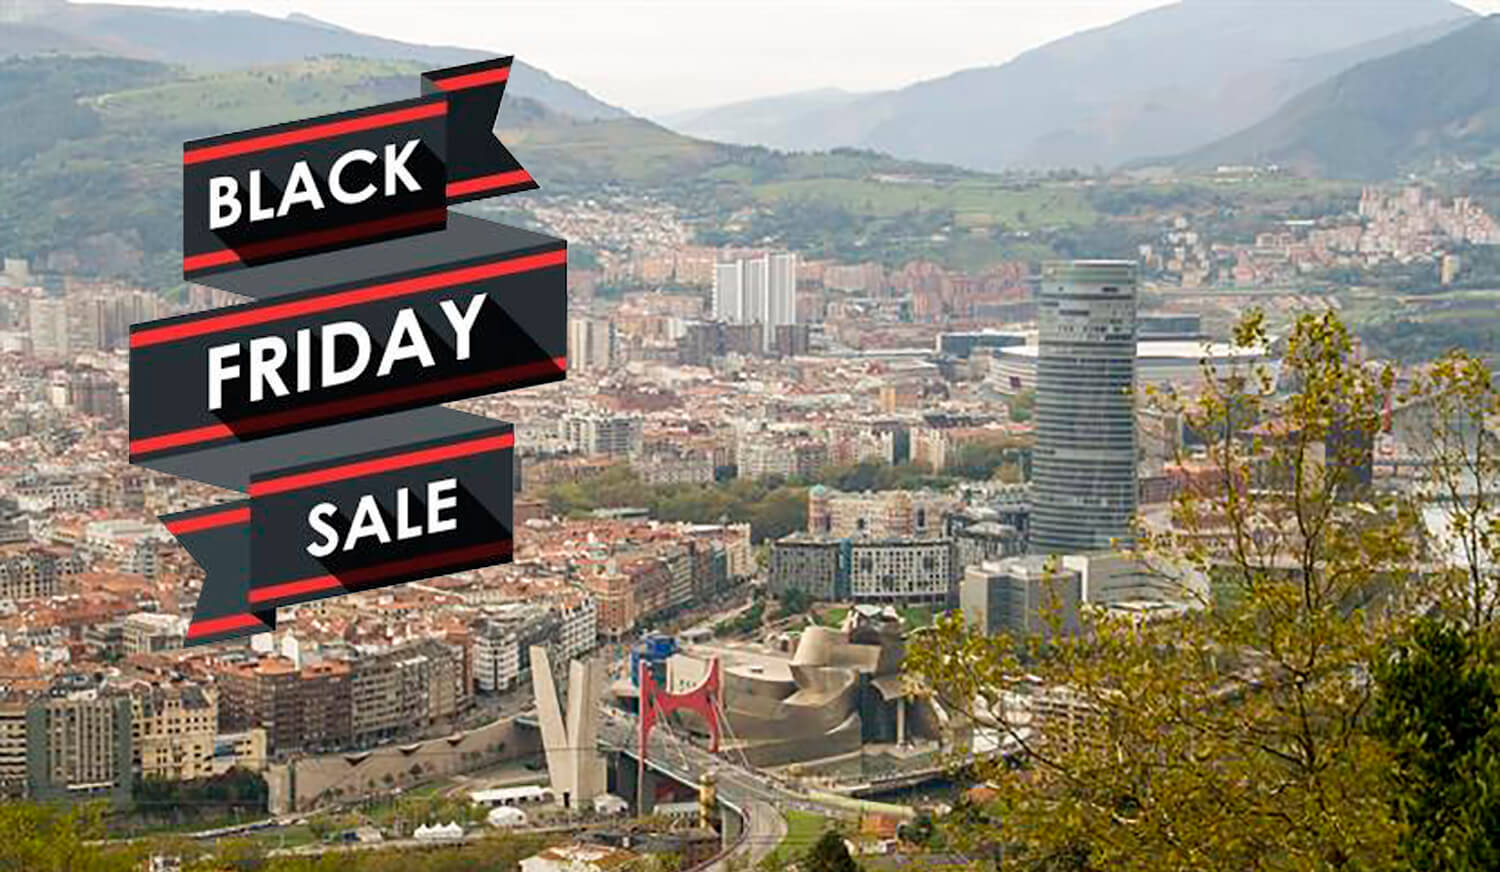 Black Friday Bilbao 2018